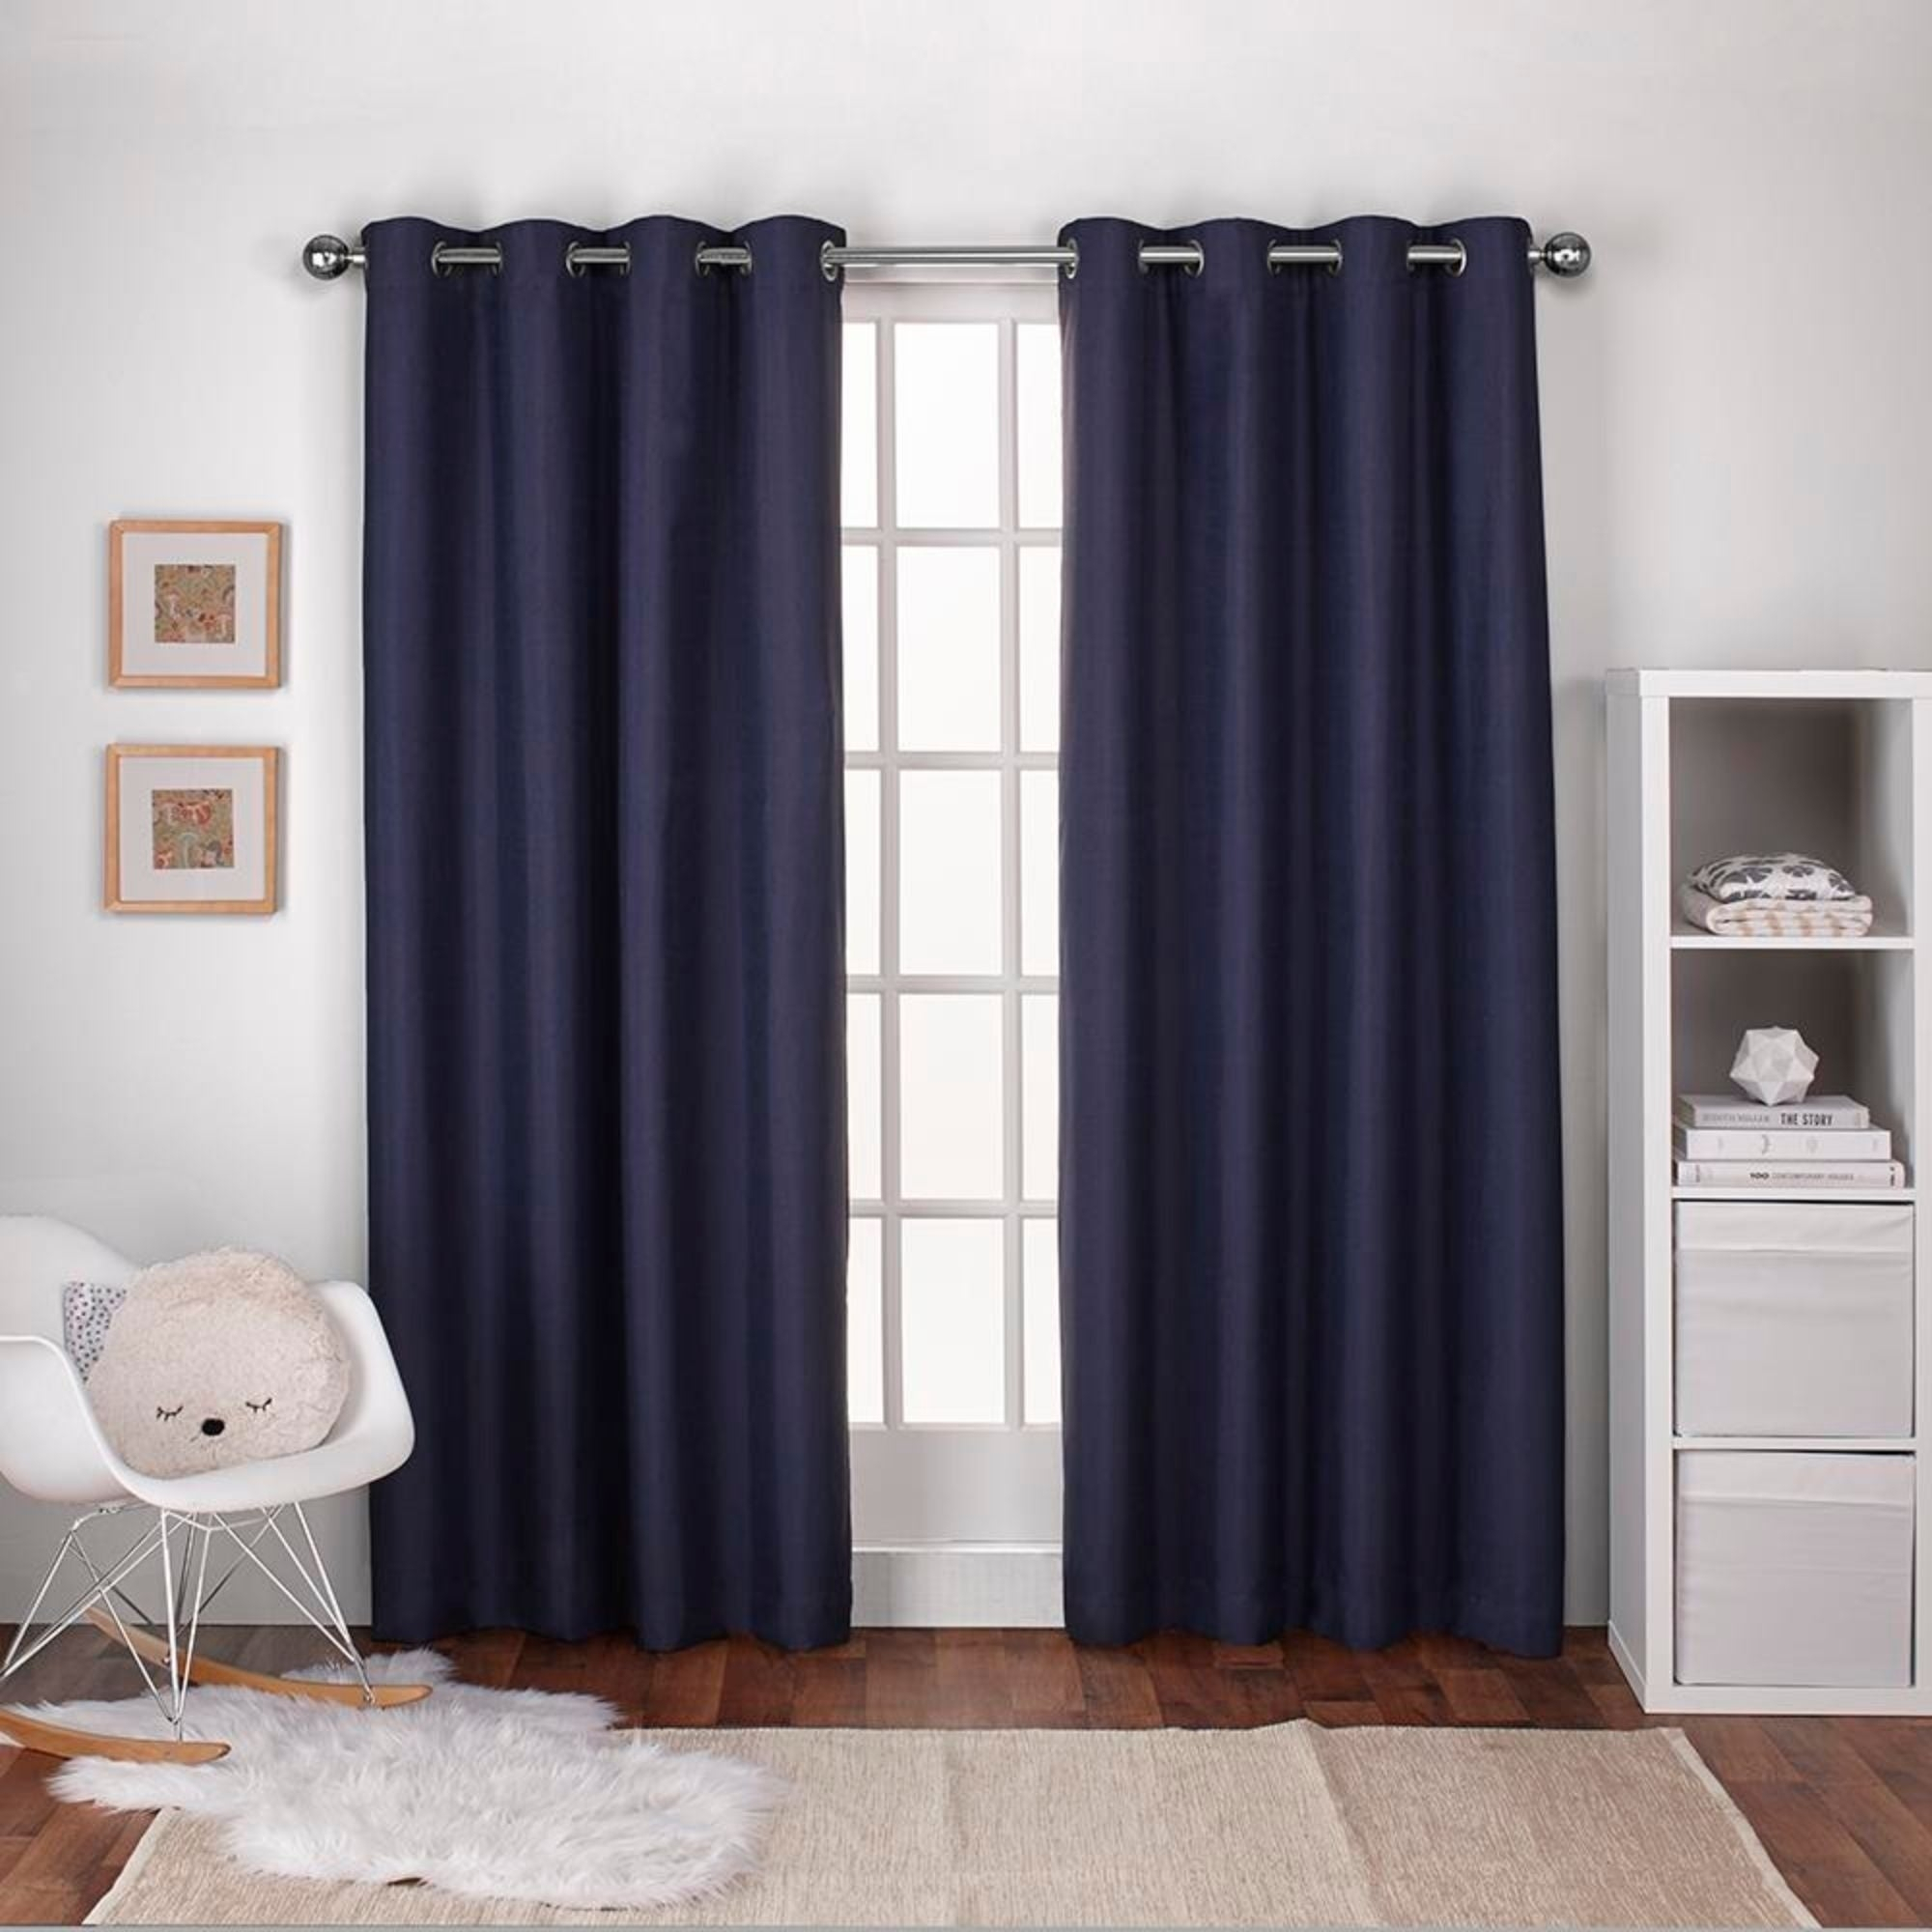 Ati Home Linen Thermal Woven Blackout Grommet Top Curtain Panel Pair Intended For Woven Blackout Curtain Panel Pairs With Grommet Top (View 15 of 30)